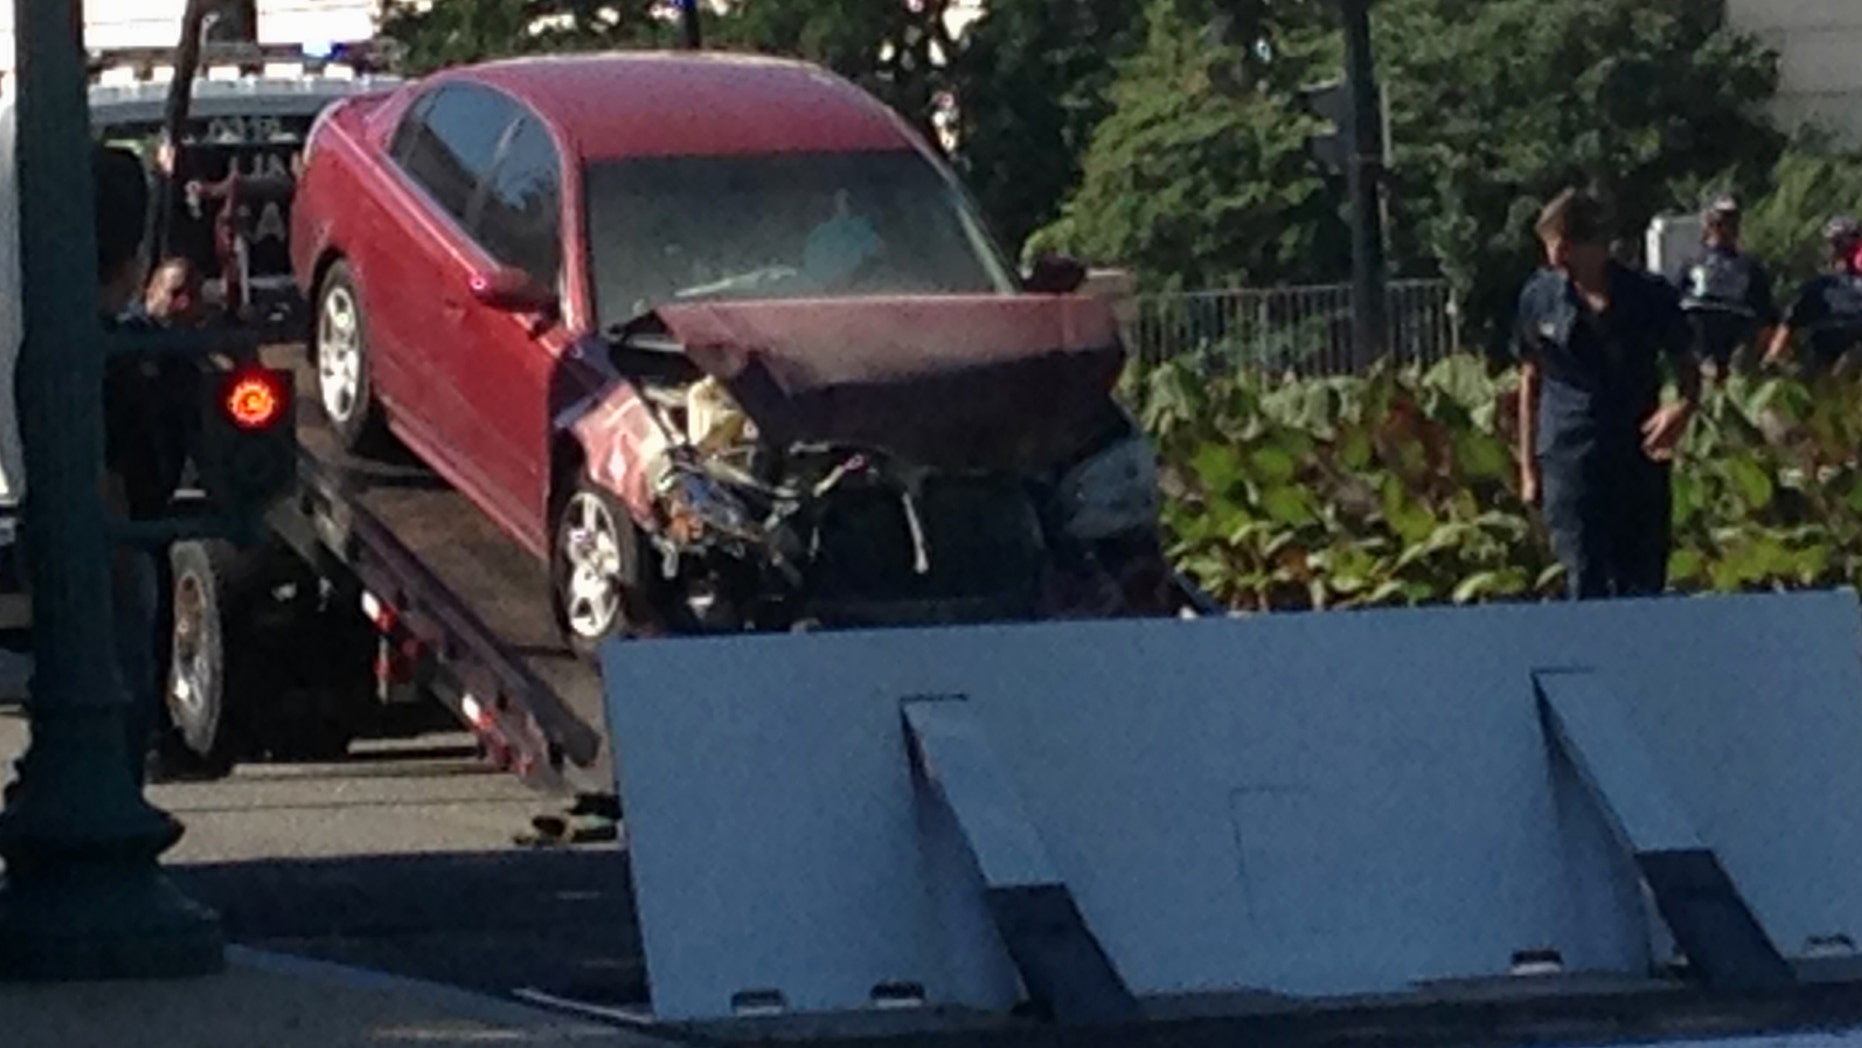 A car is is moved after crashing into a barrier on Capitol Hill in Washington, Friday, July 31, 2015.